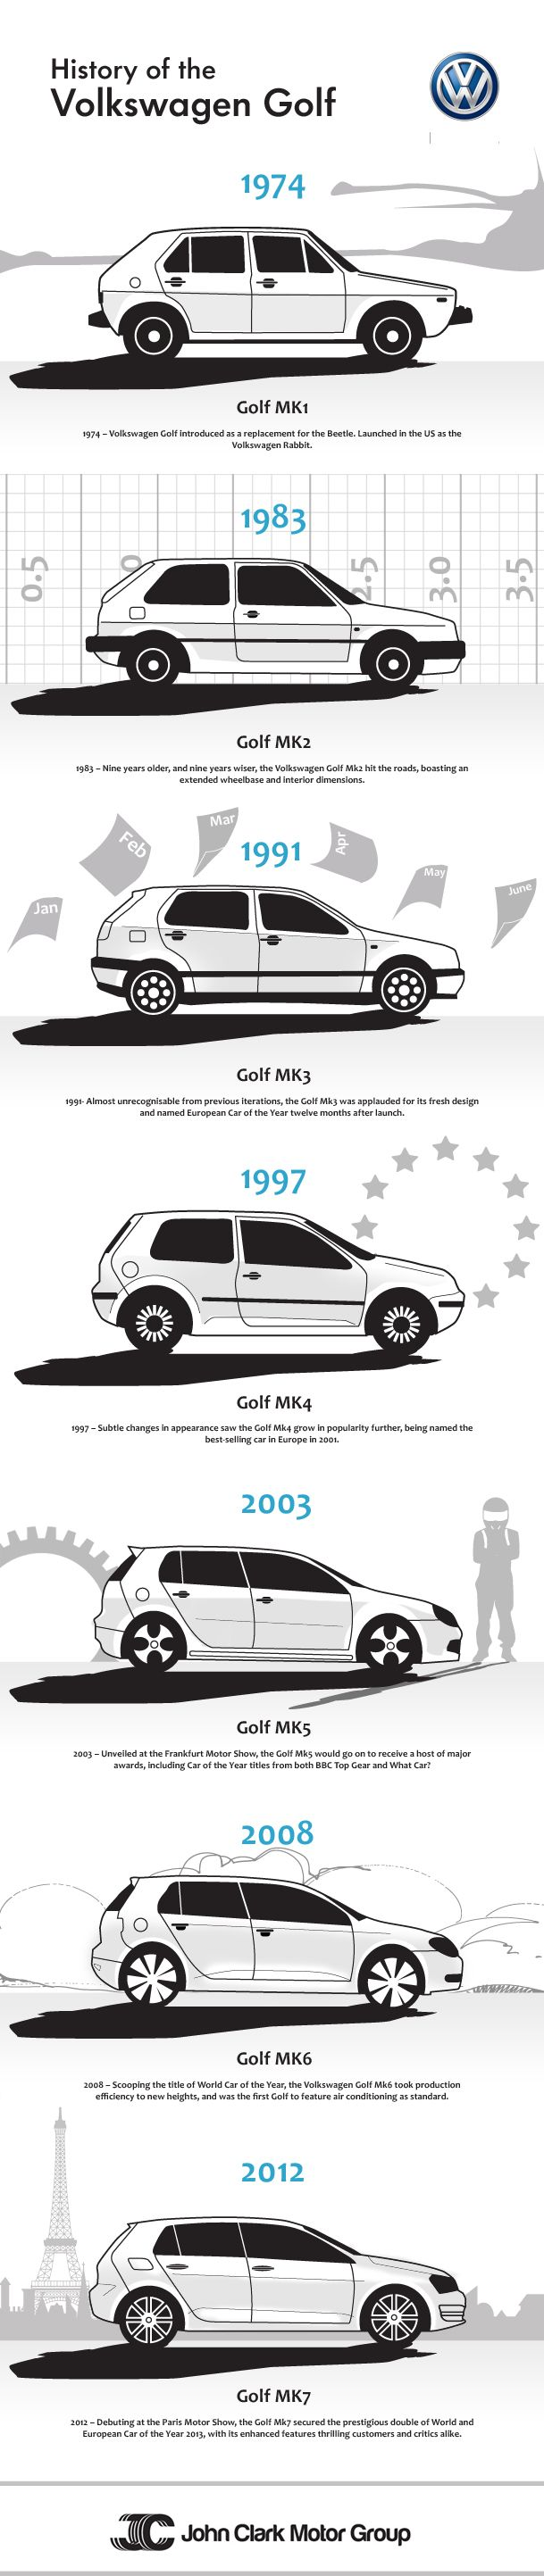 De evolutie van de Volkswagen Golf  #Volkswagen #Golf #Evolution